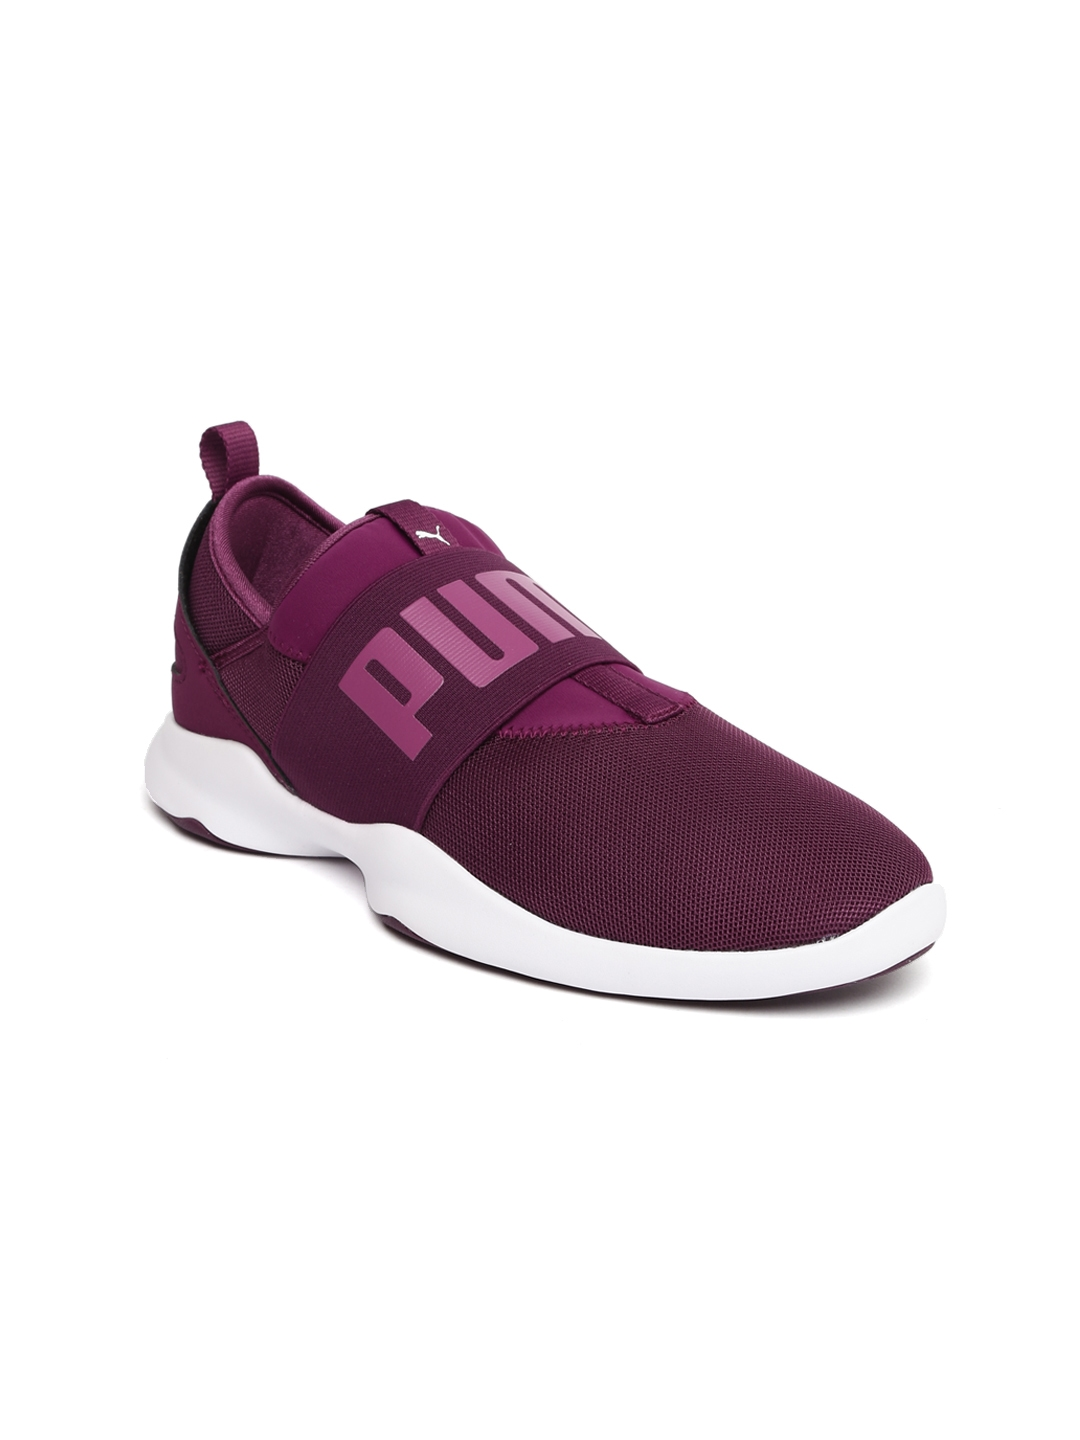 2e3a3aecdb2 Buy Puma Women Purple Dare Slip On Sneakers - Casual Shoes for Women ...